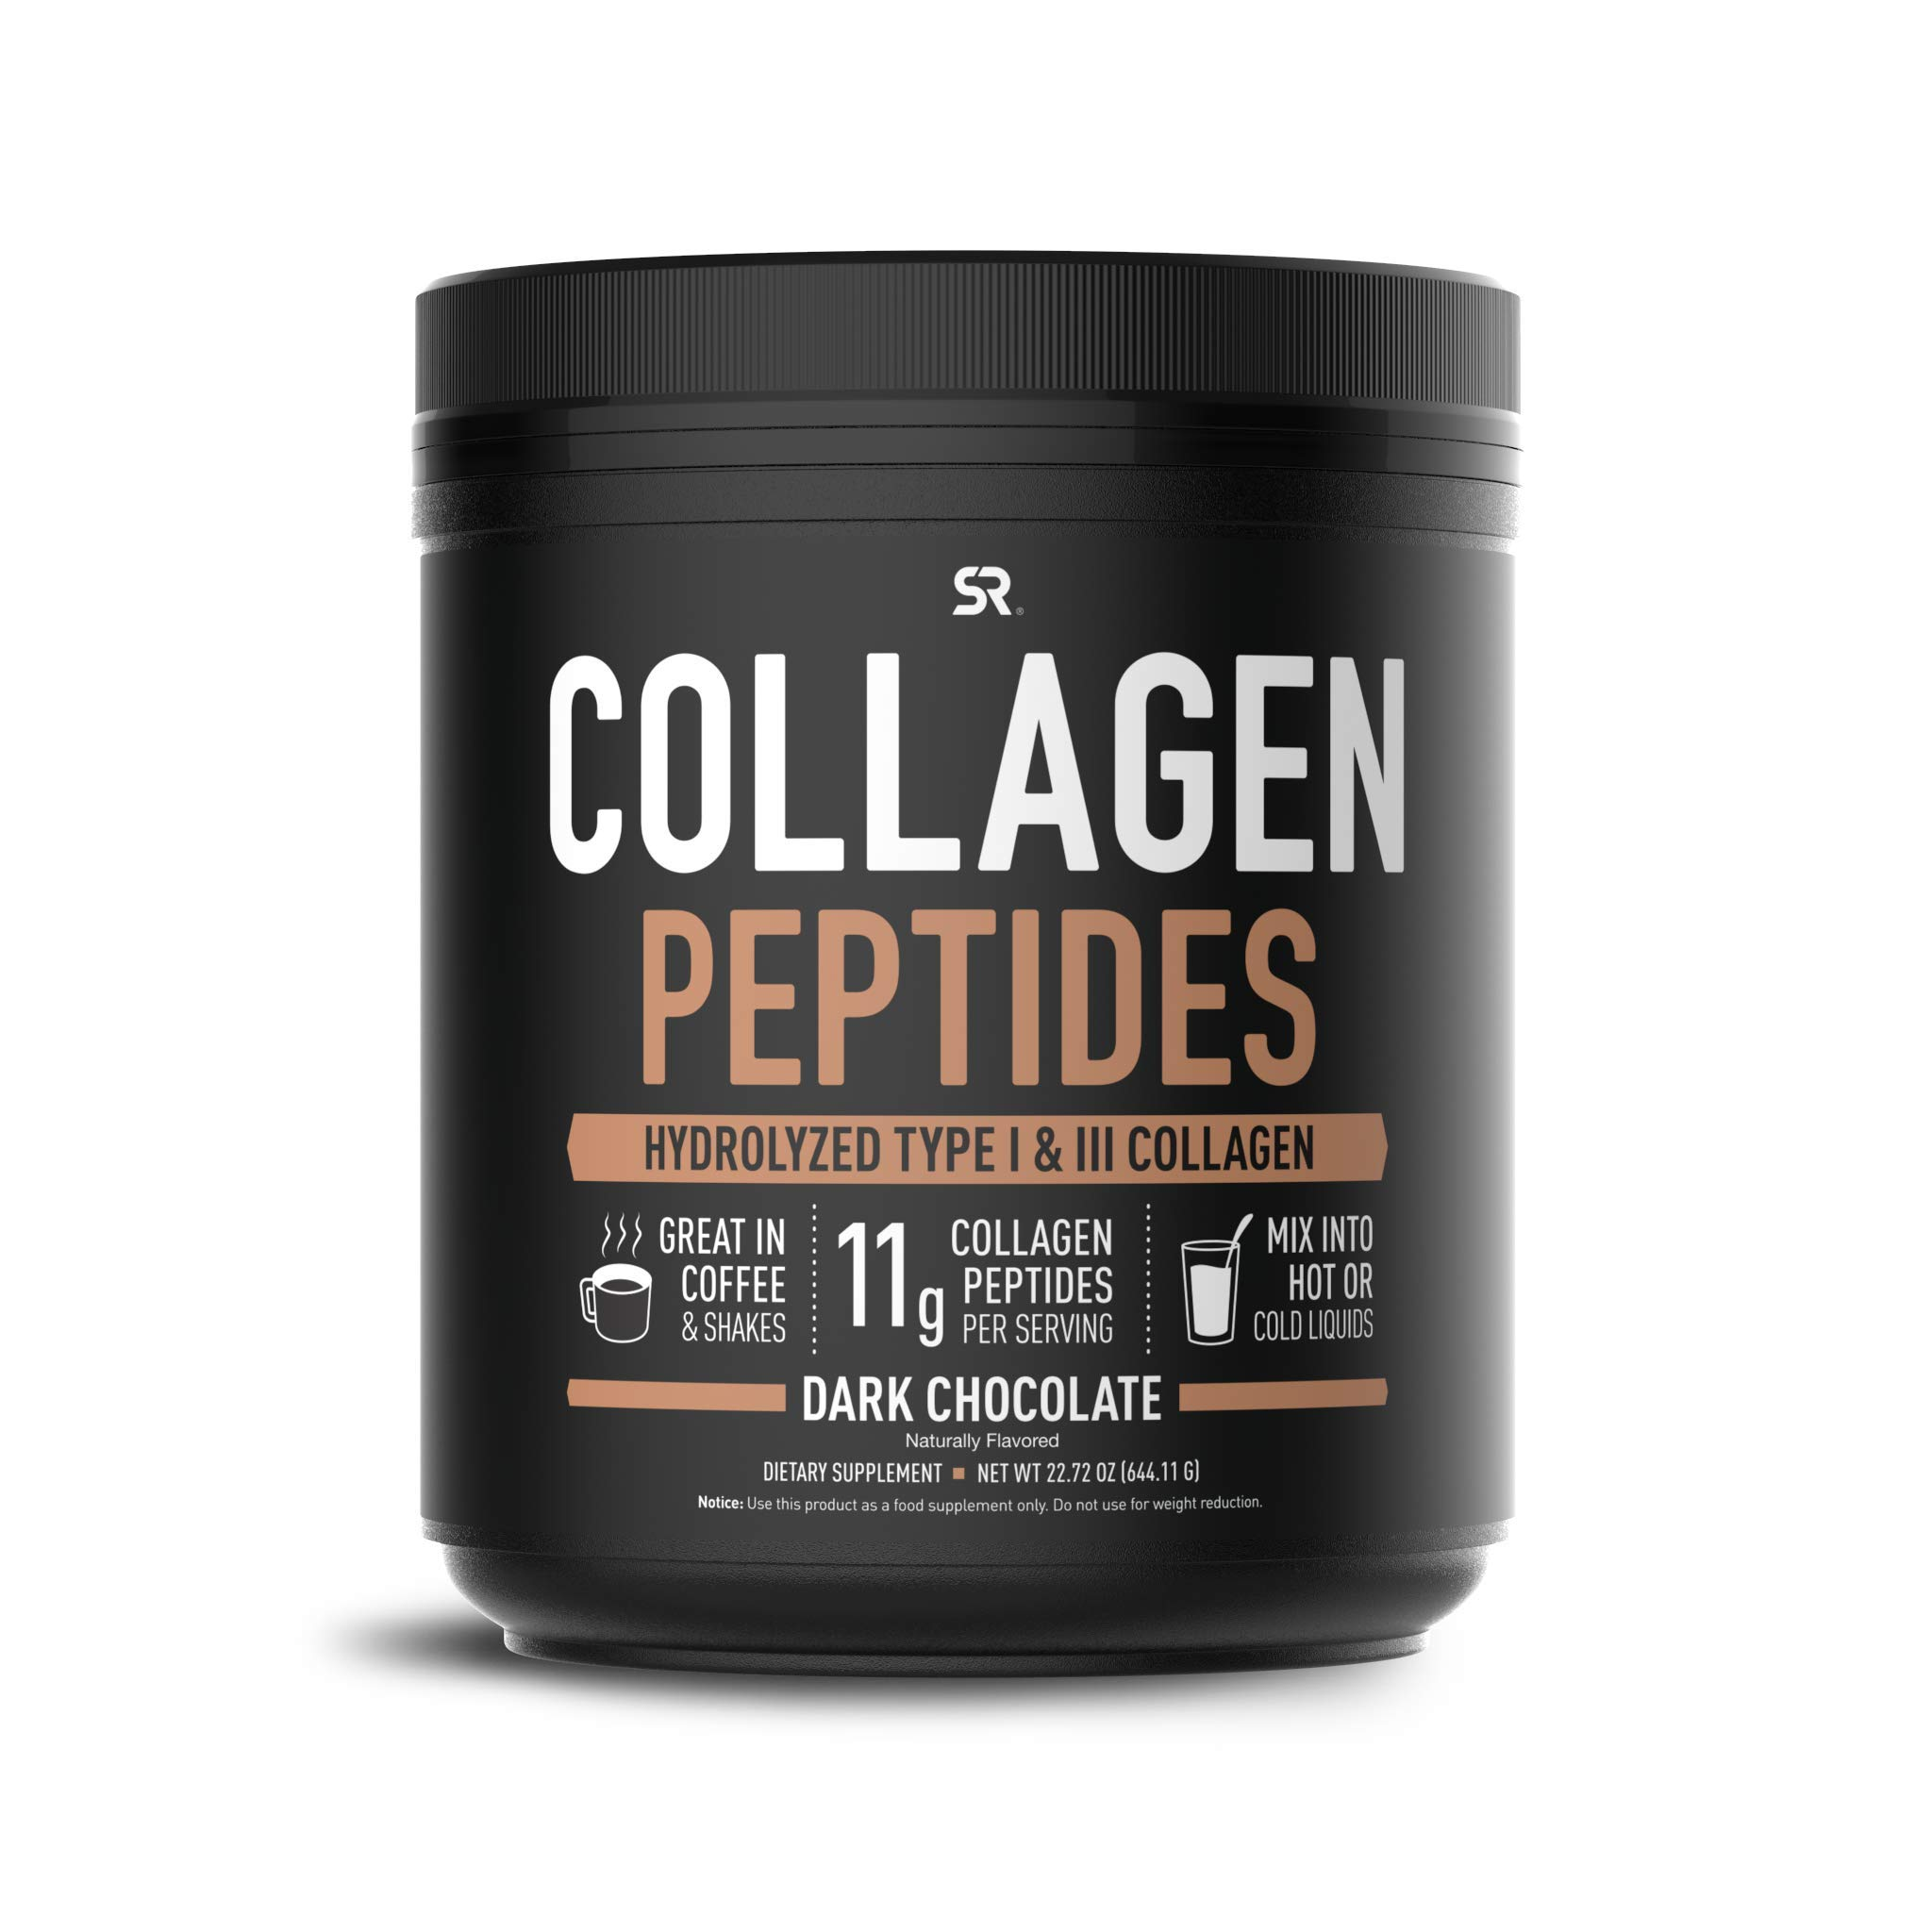 Collagen Peptides Powder (41 Servings) | Delicious Dark Chocolate Flavor That goes Great in Coffee, Water or Protein Shakes | Non-GMO, Paleo + Keto Friendly and Gluten Free